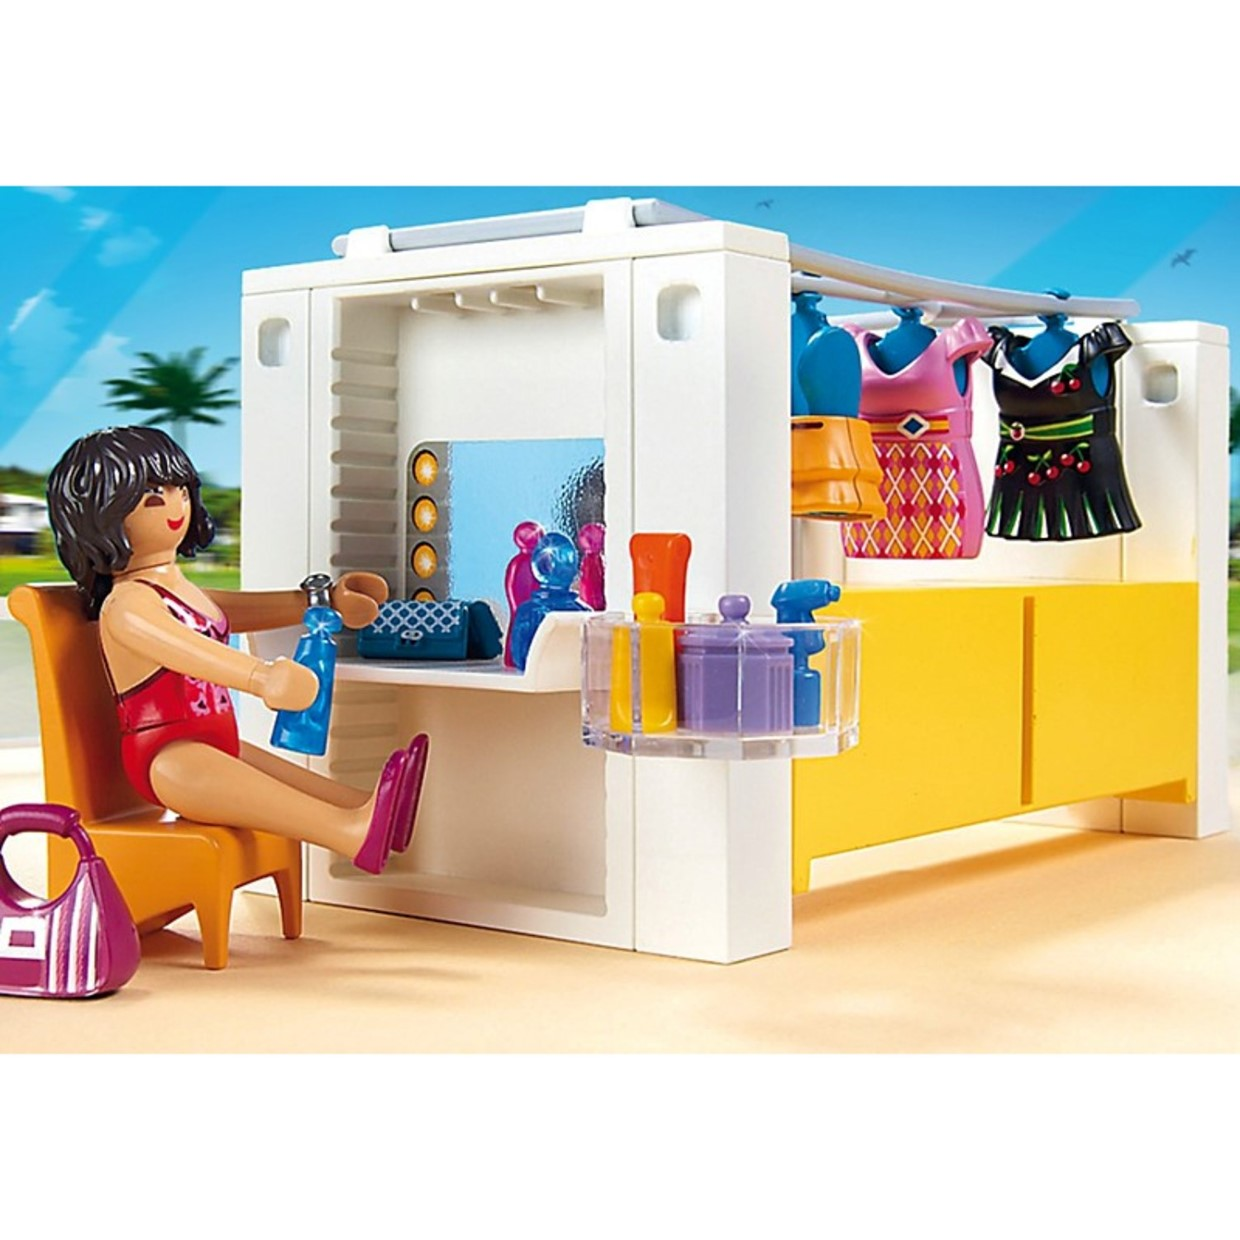 Villa luxe playmobil images for Salle a manger playmobil 5332